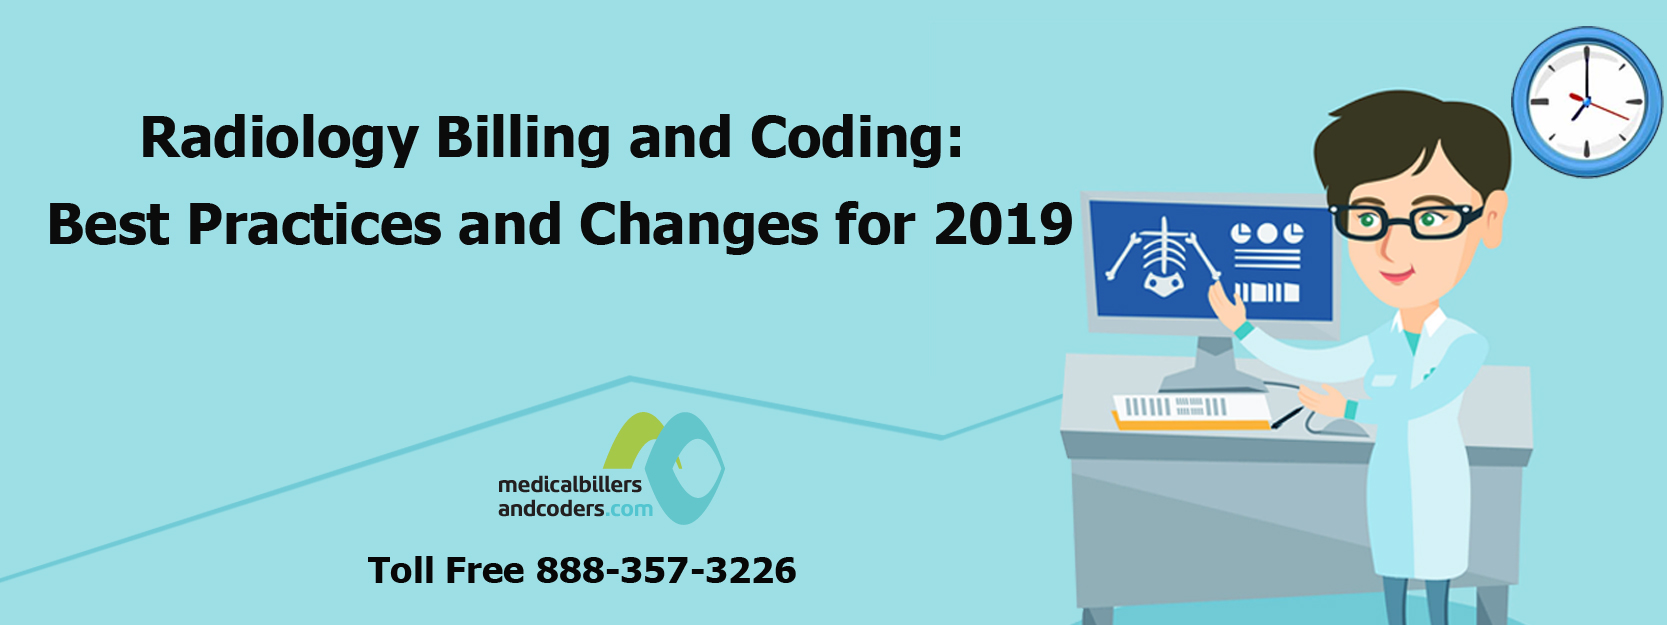 Radiology-Billing-and-Coding-Best-Practices-and-Changes-for-2019